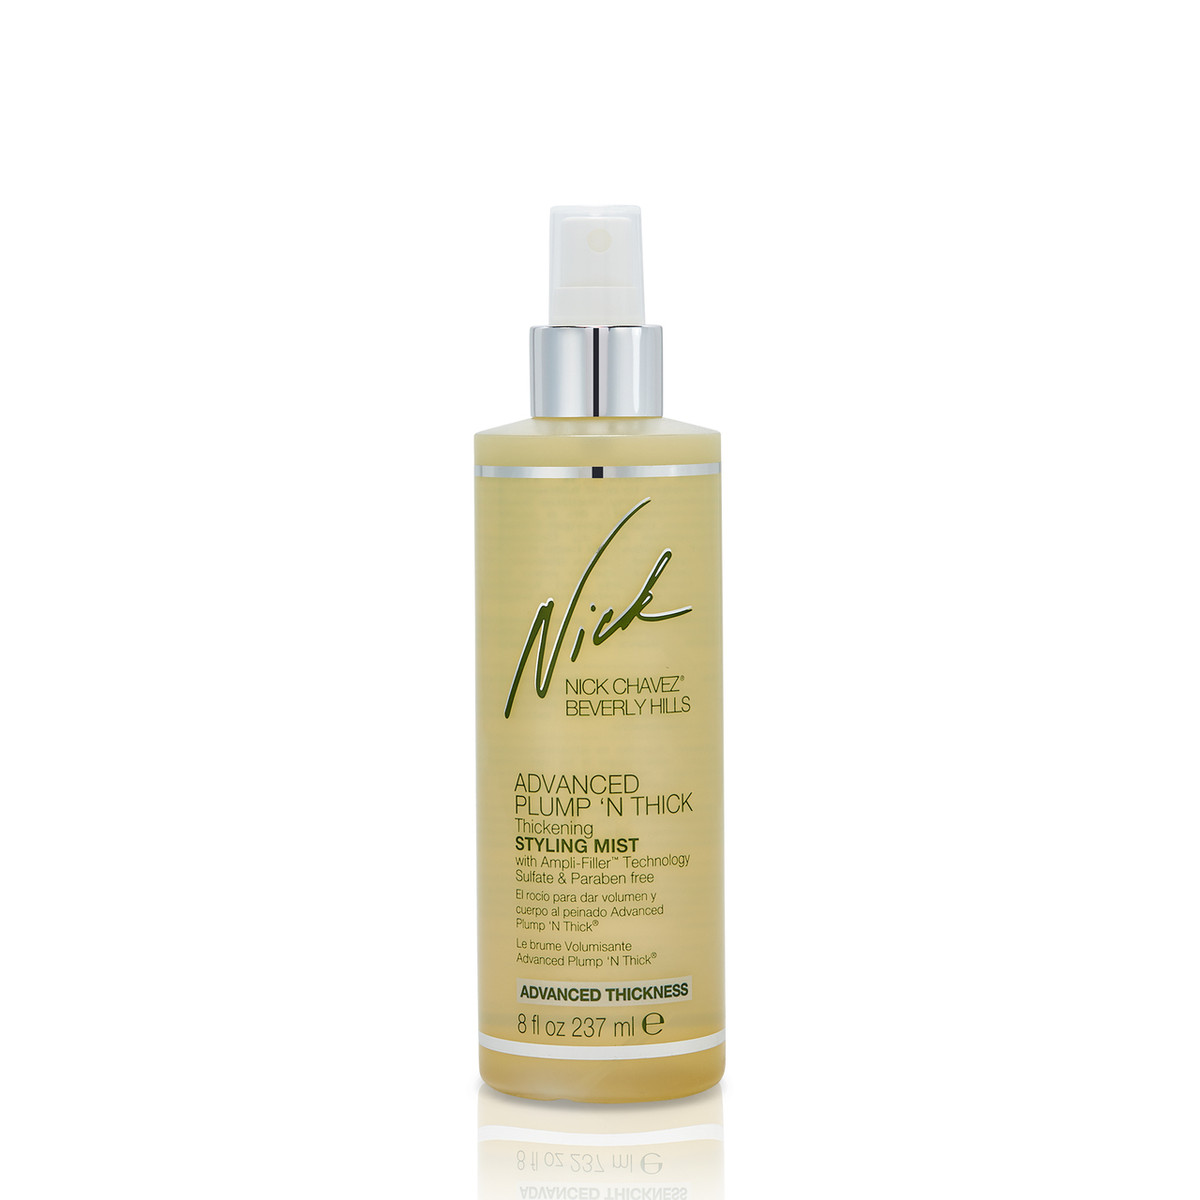 Advanced Plump 'N Thick Thickening Styling Mist